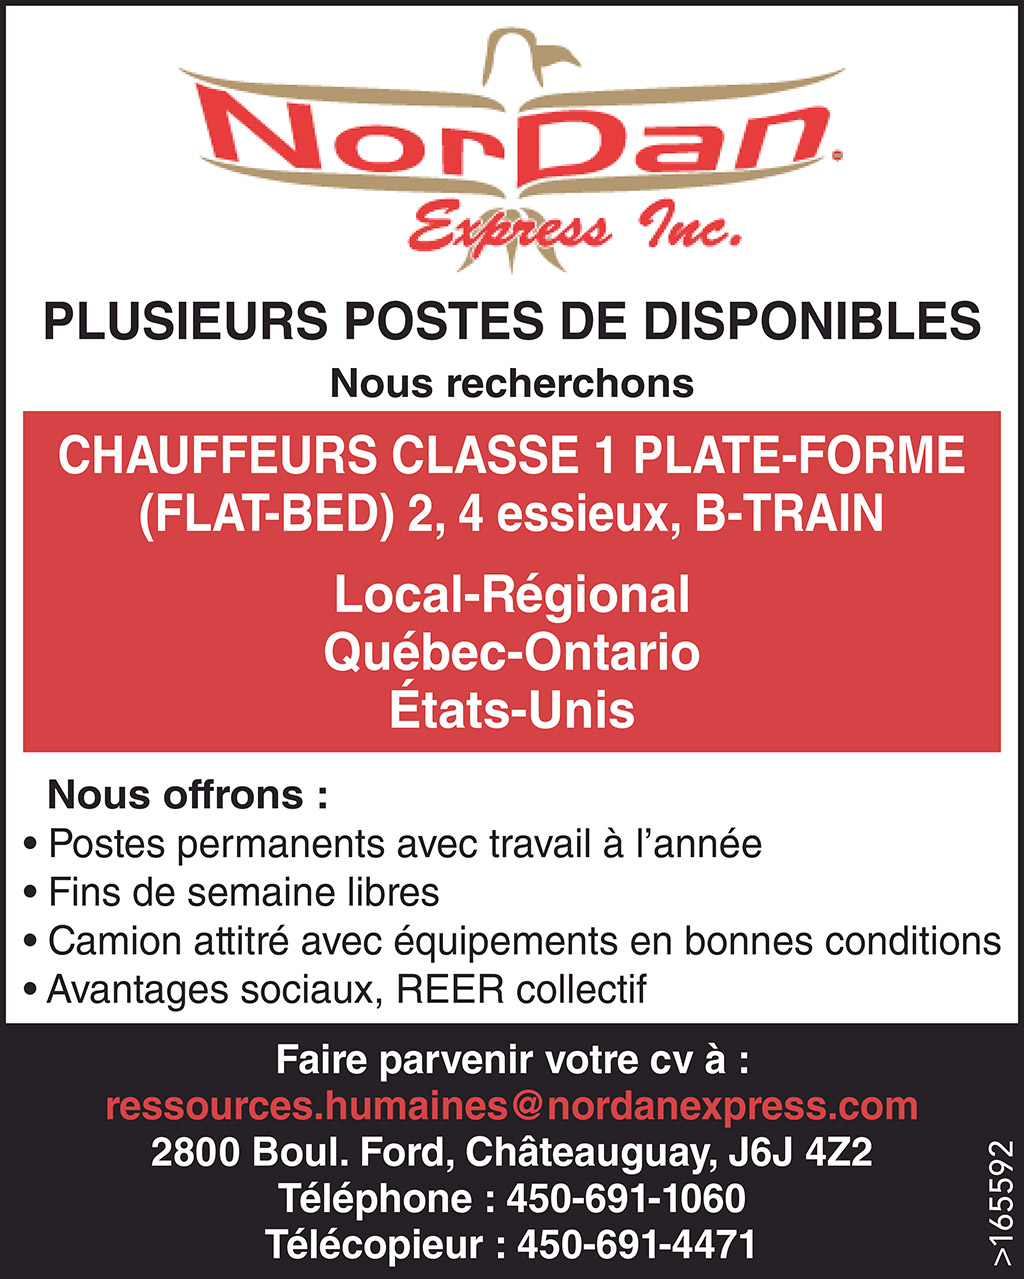 CHAUFFEURS CLASSE 1 PLATE-FORME (FLAT-BED) 2, 4 essieux, B-TRAIN